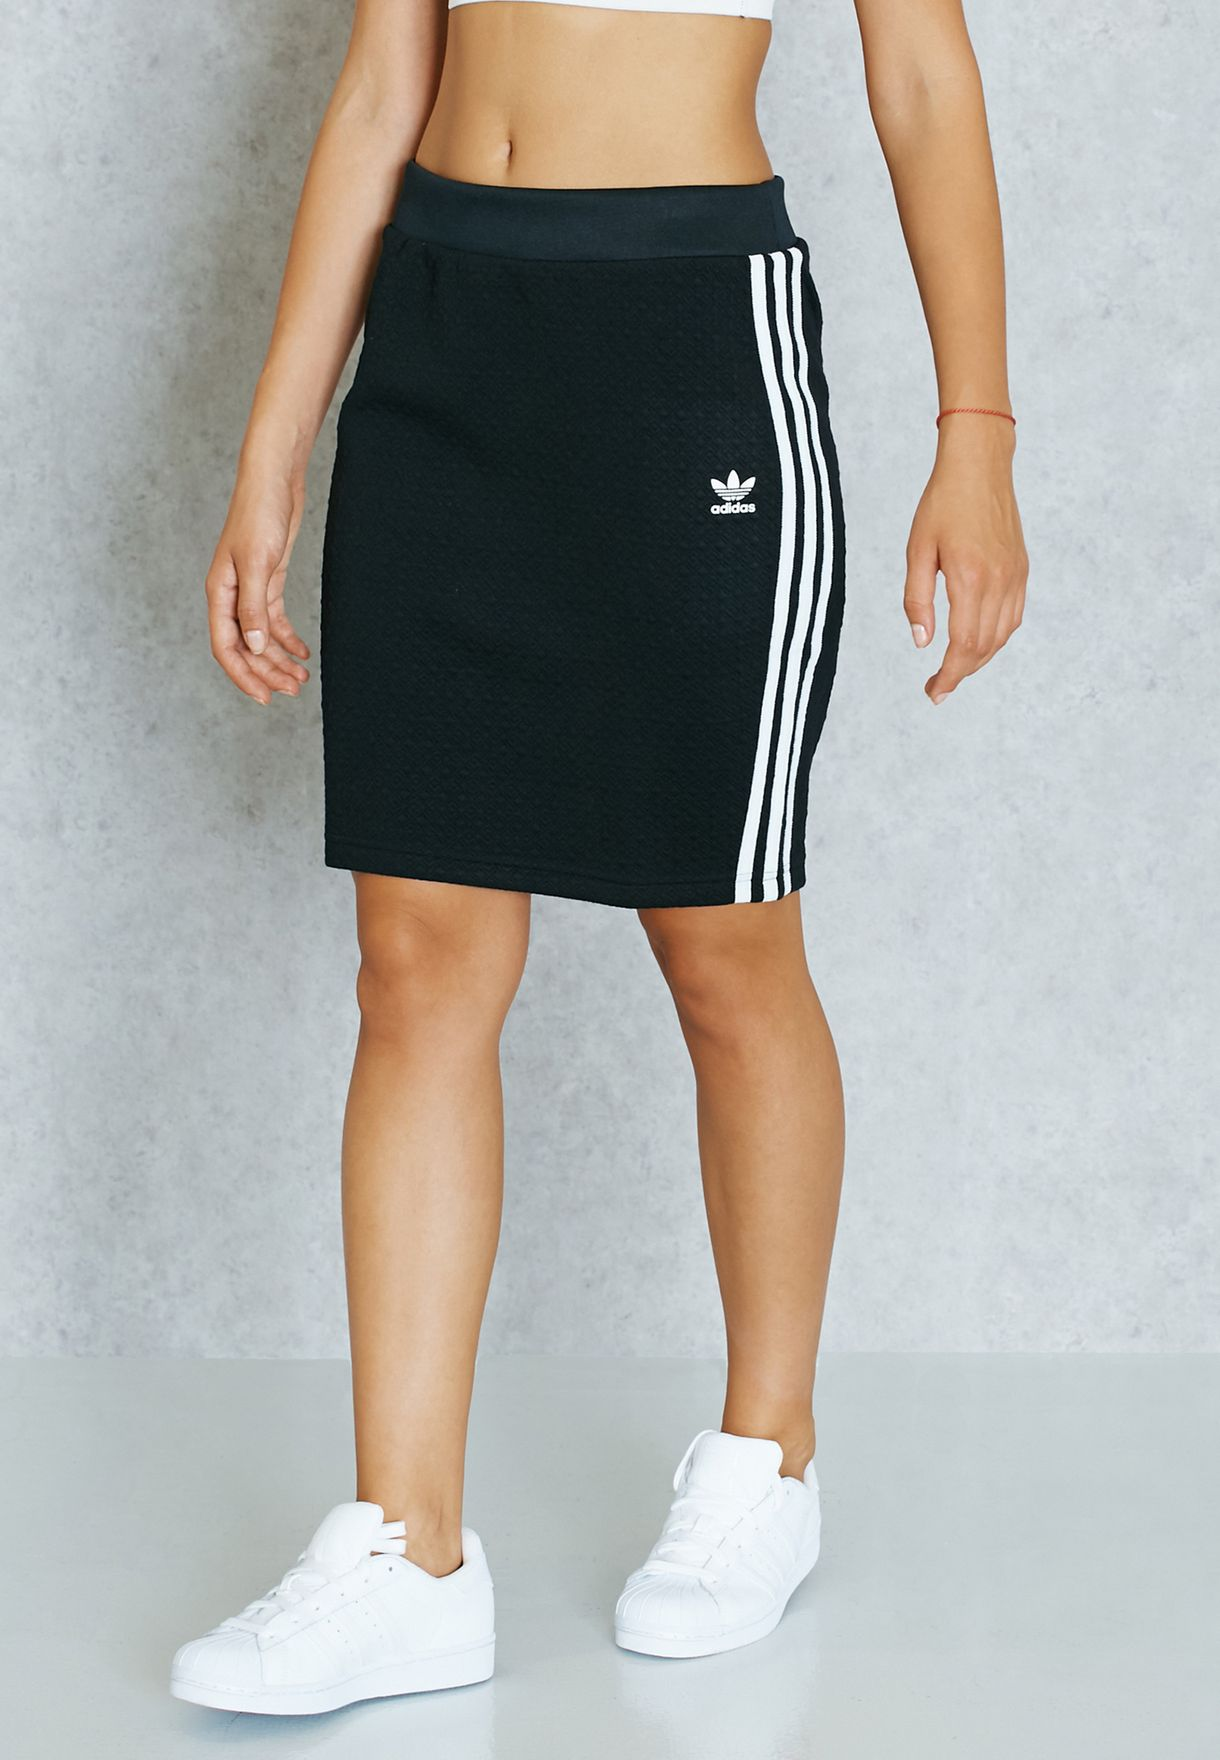 caee7c6fa Shop adidas Originals black 3 Stripe Skirt AY6589 for Women in UAE ...